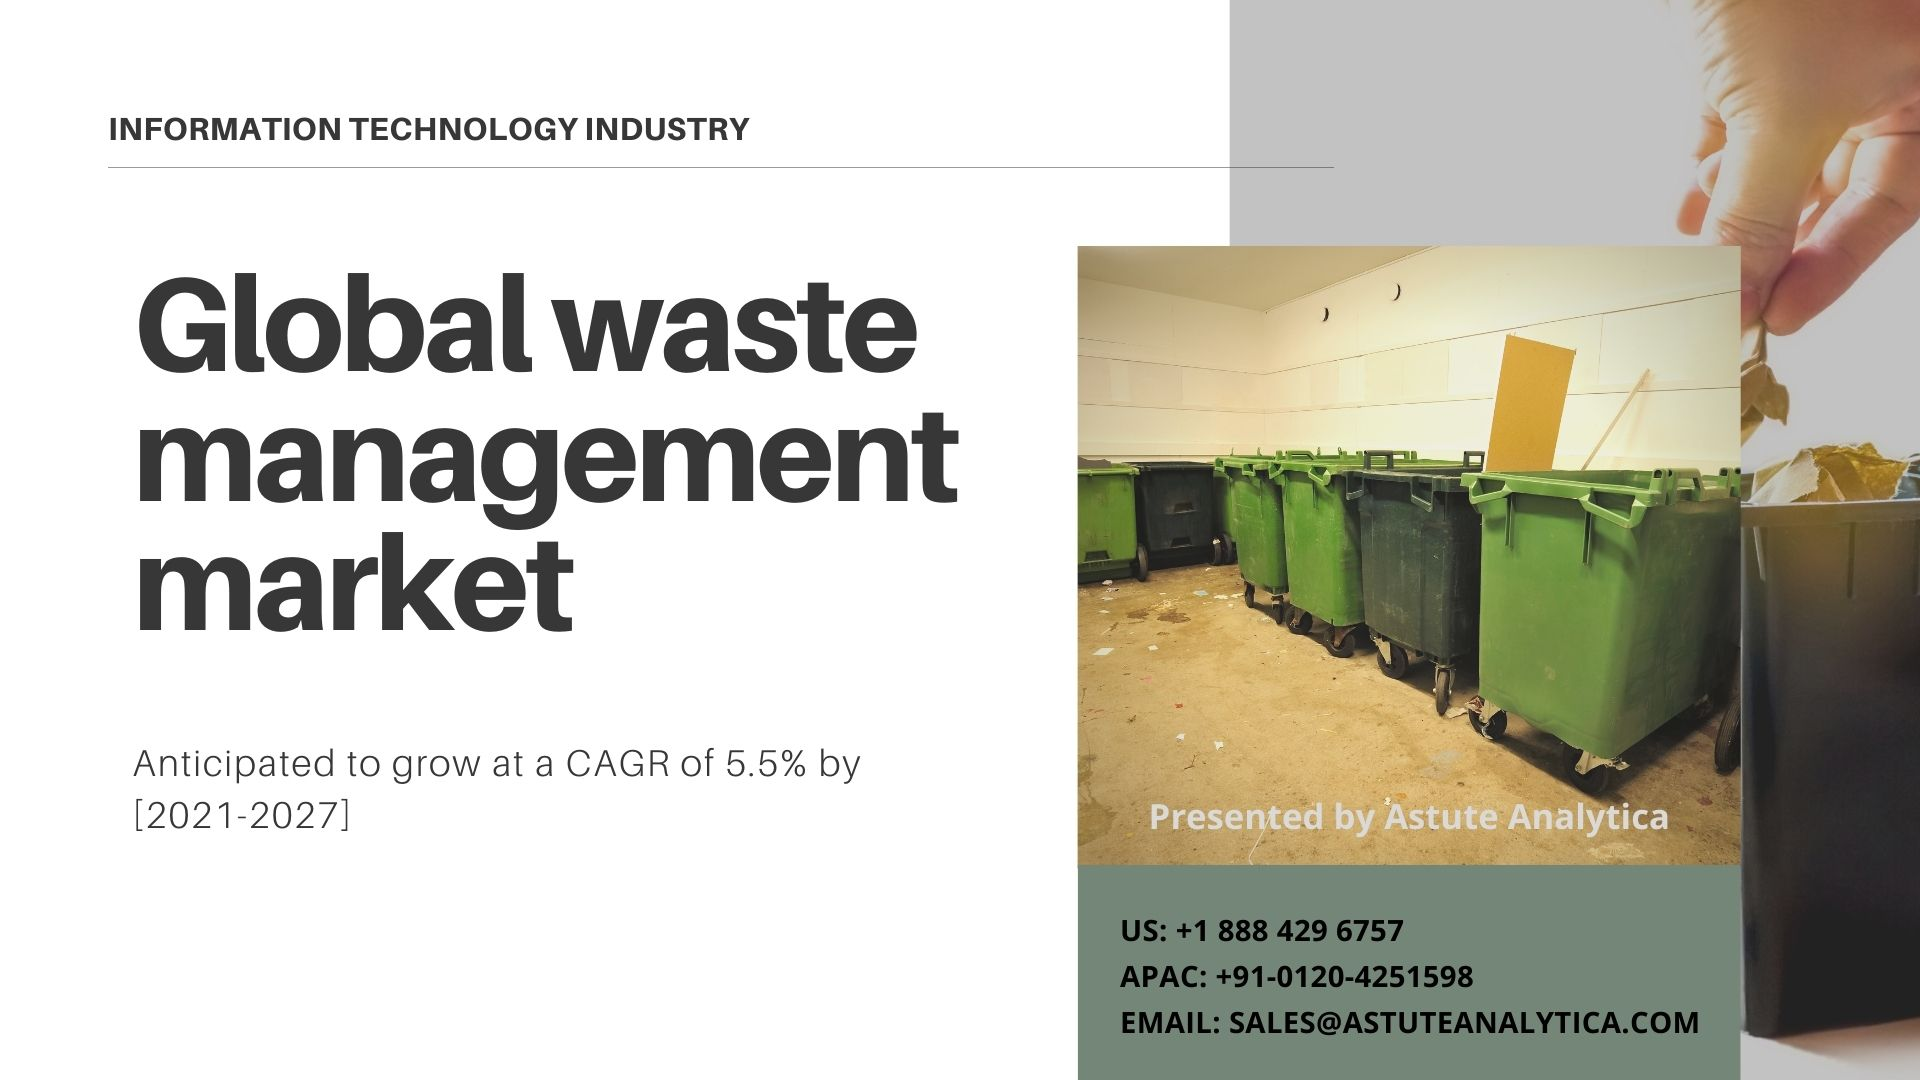 Waste management market 2021 global outlook, research, trends and forecast to 2027